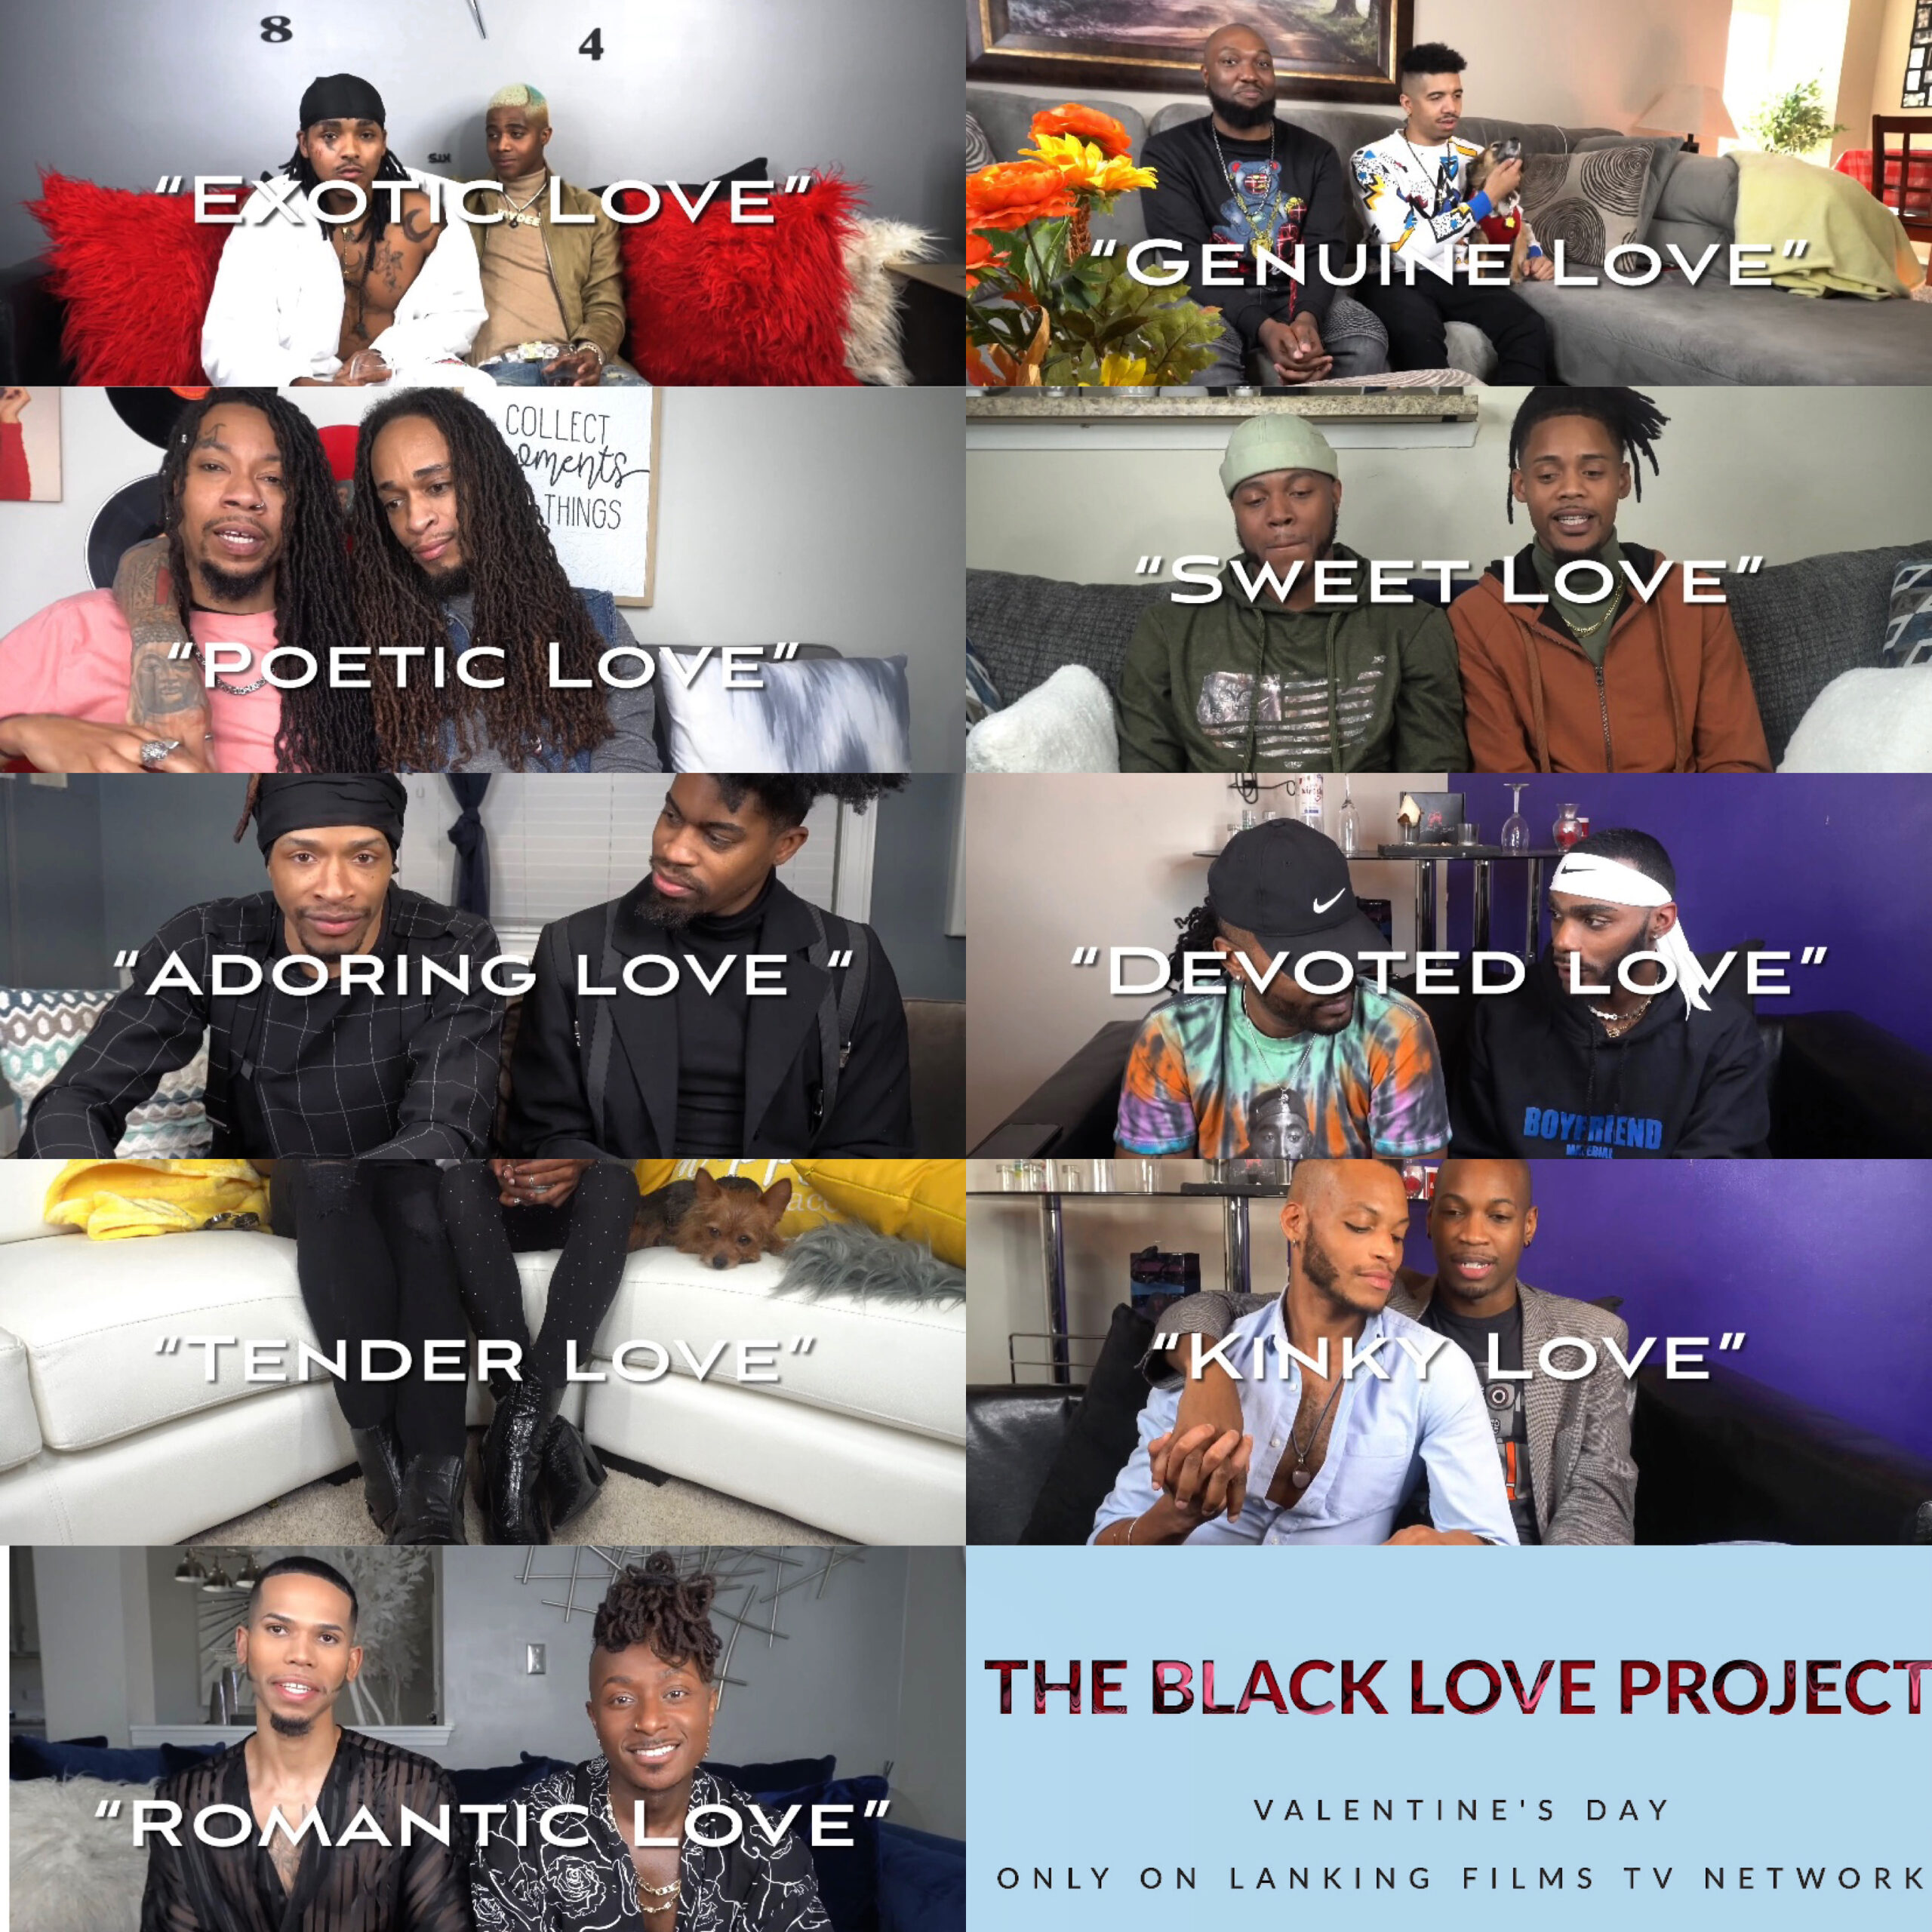 the black love project movie poster